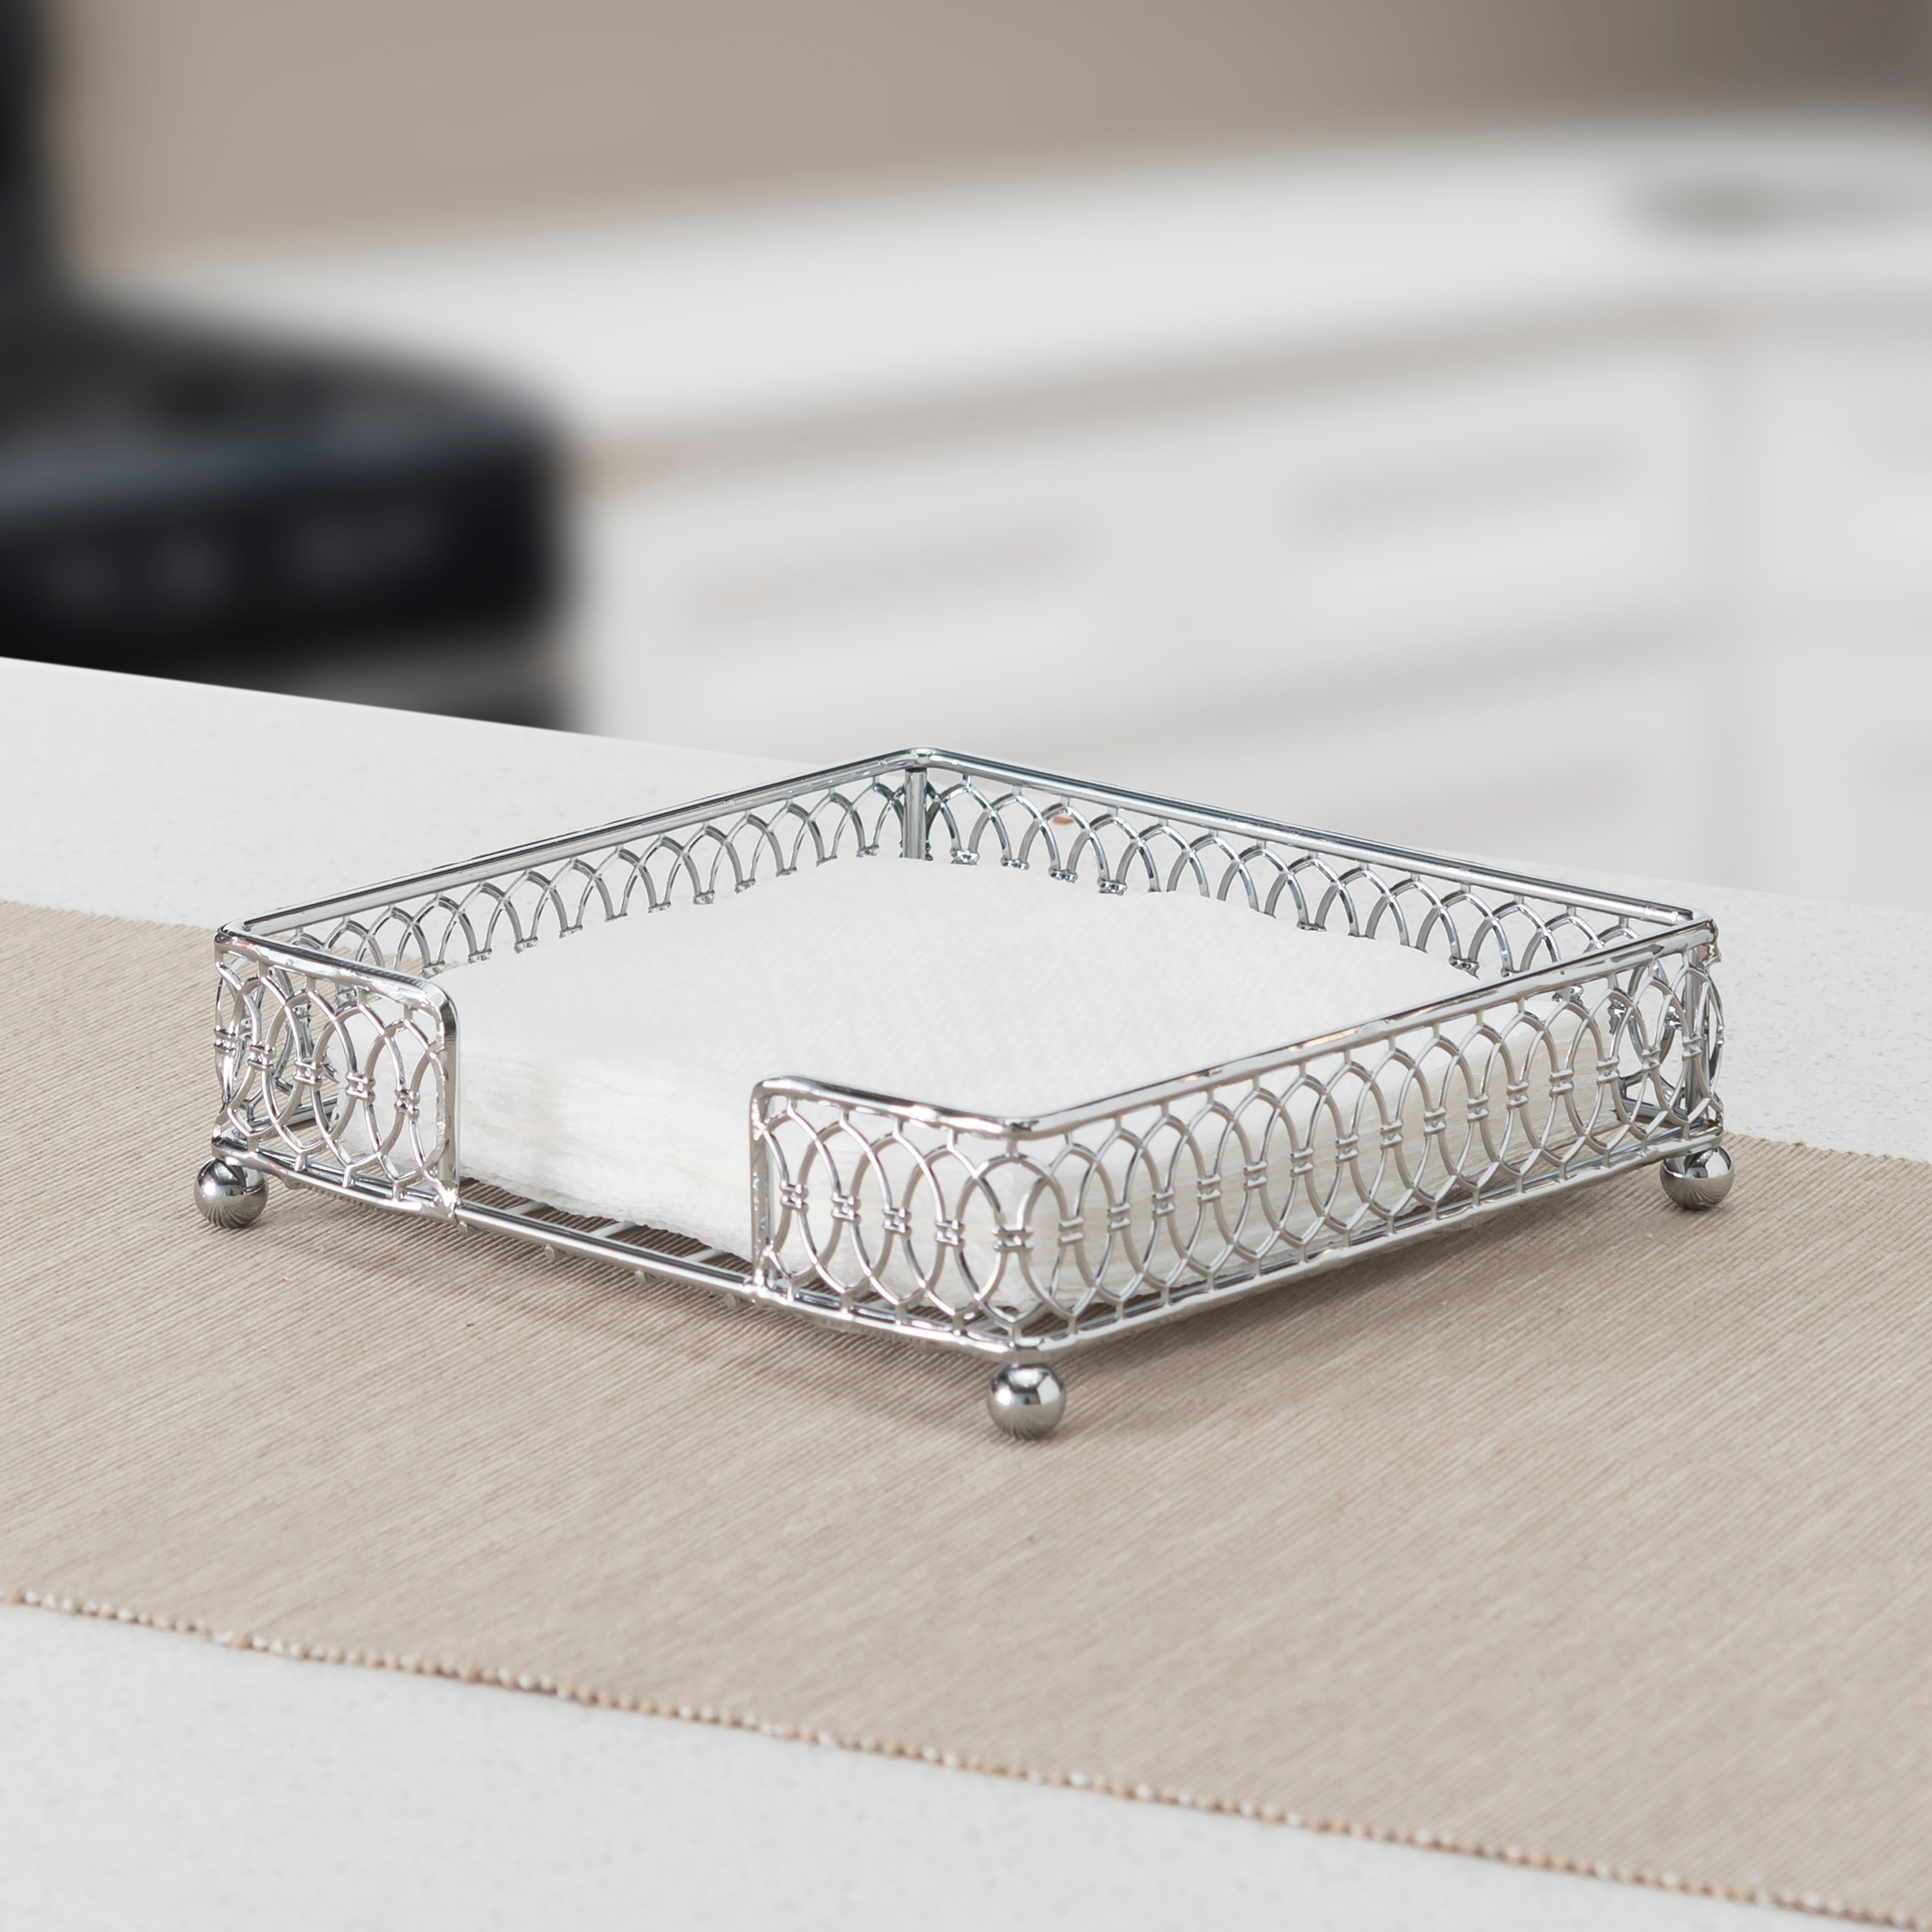 Infinity Collection Flat Napkin Holder Chrome Overstock 28133884